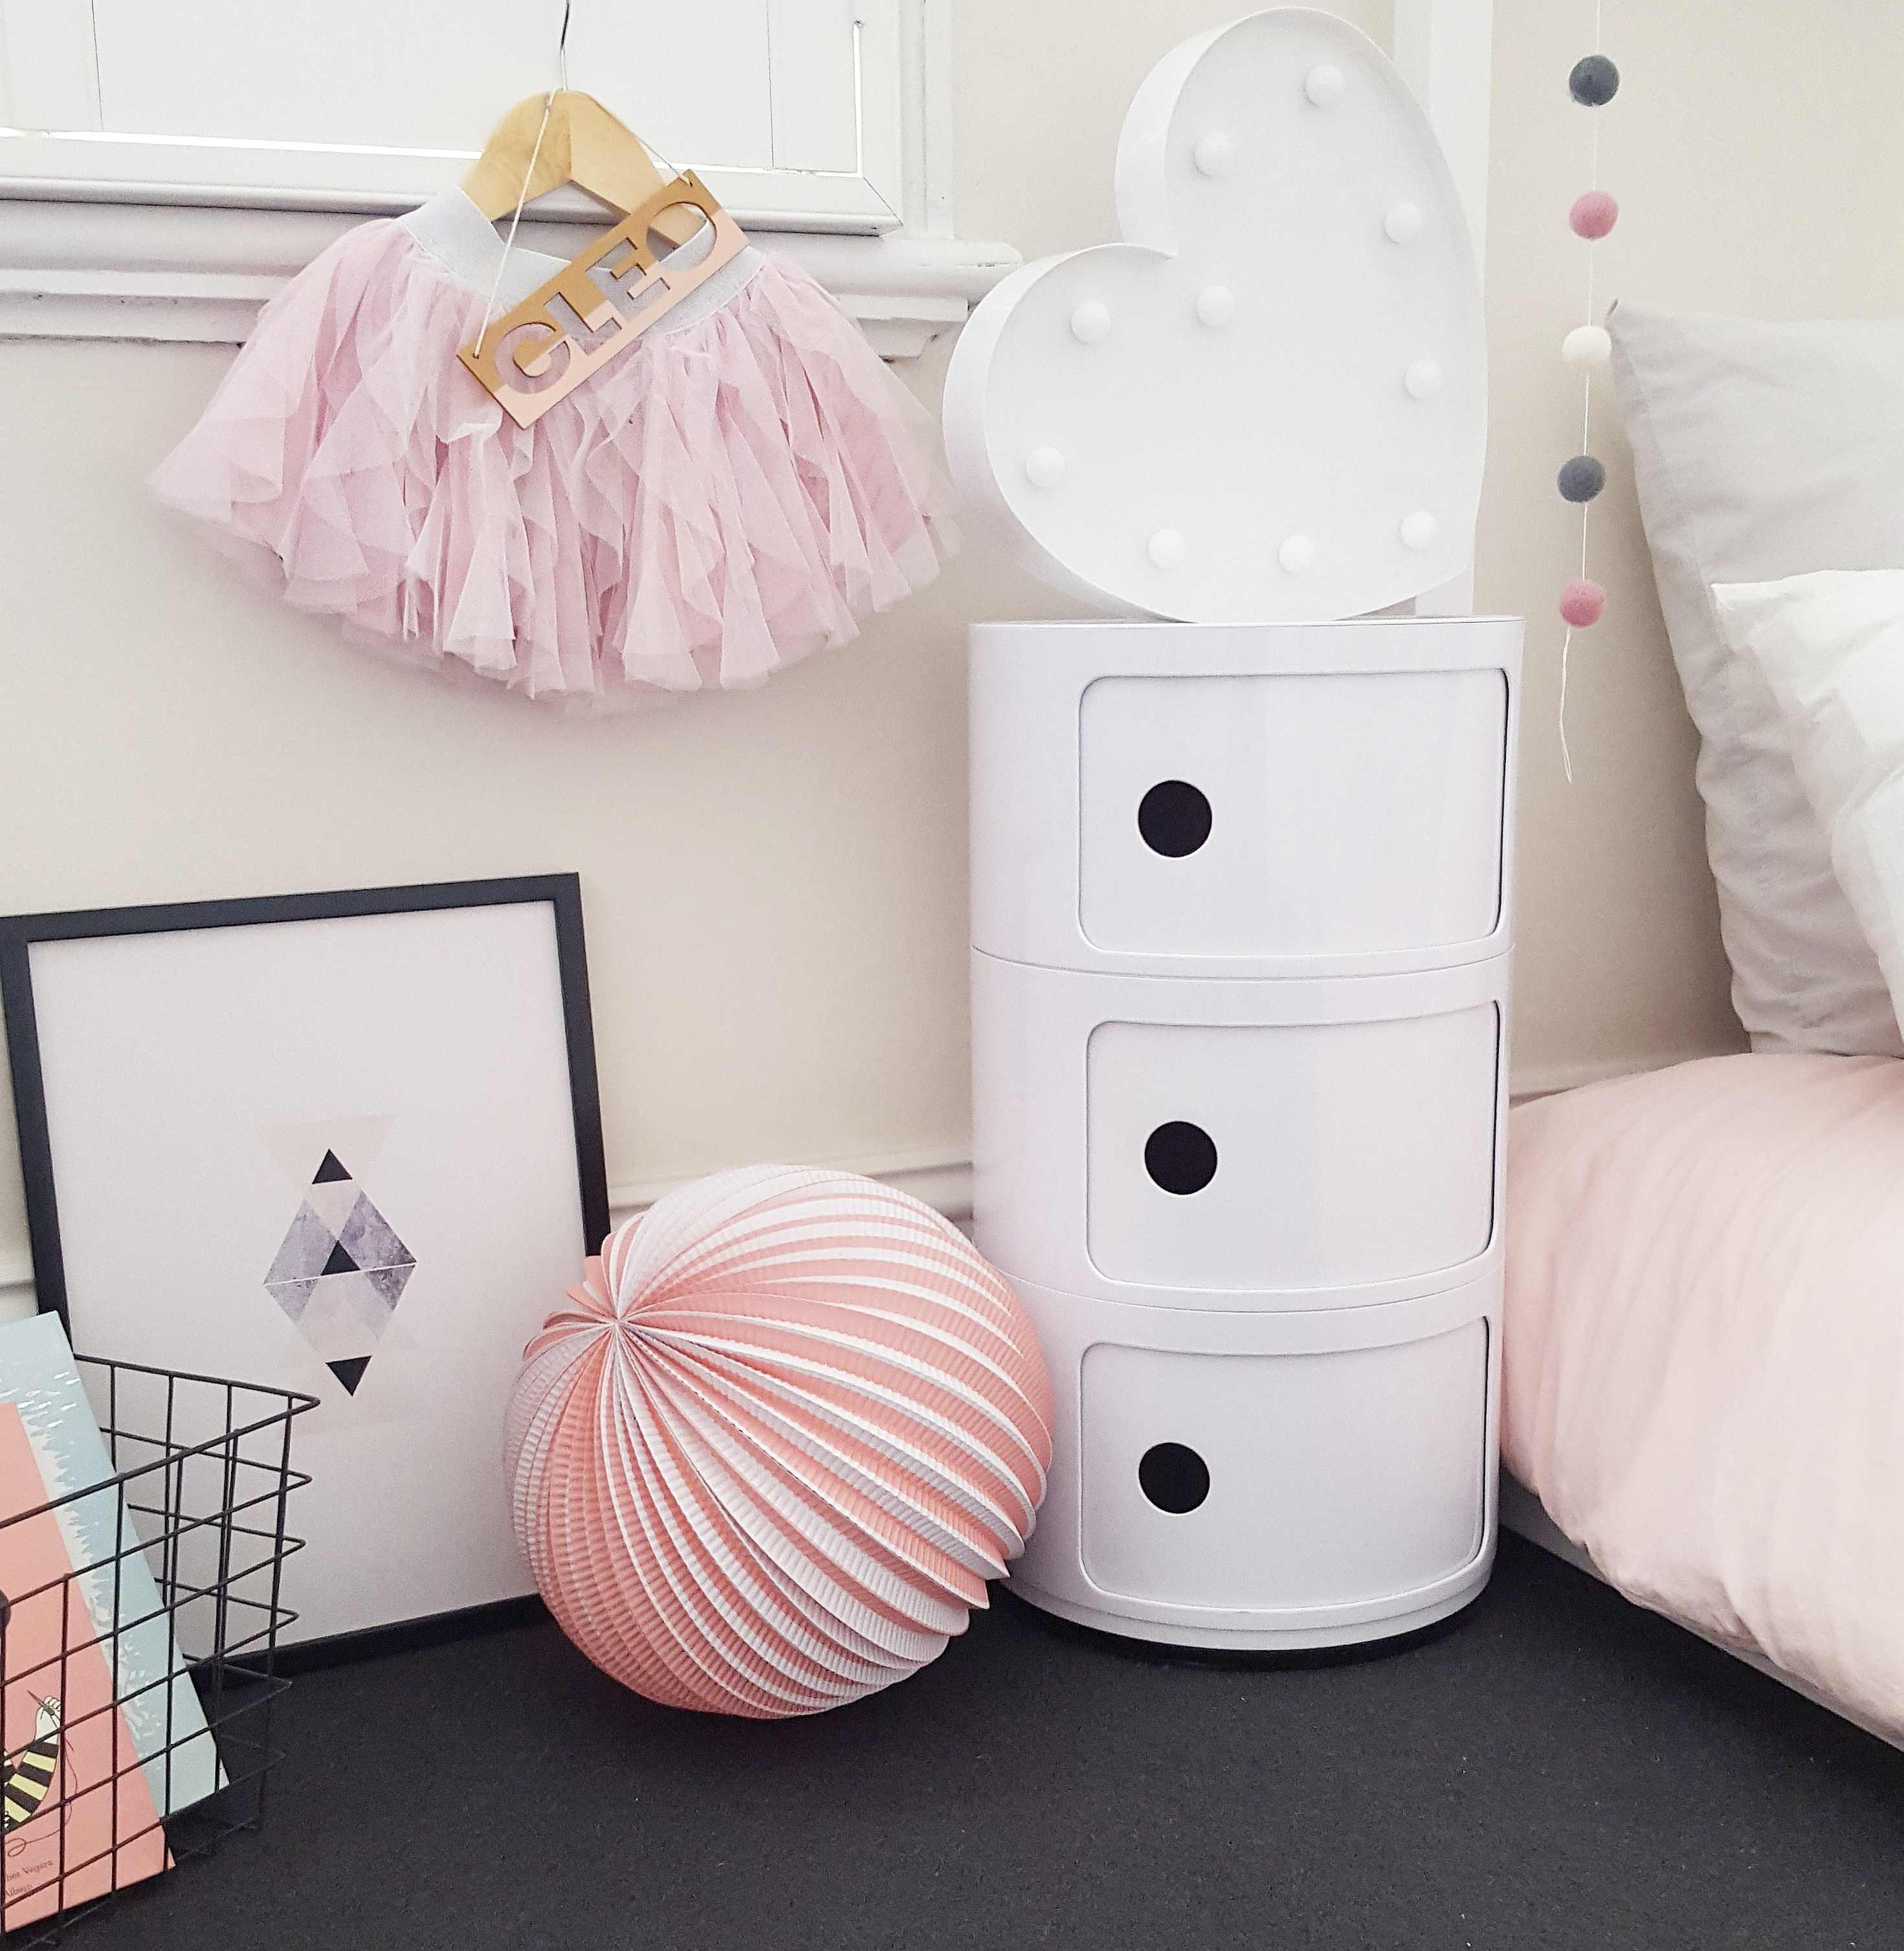 Decorating a kids room on a budget the reject shop - How to decorate kids bedroom ...